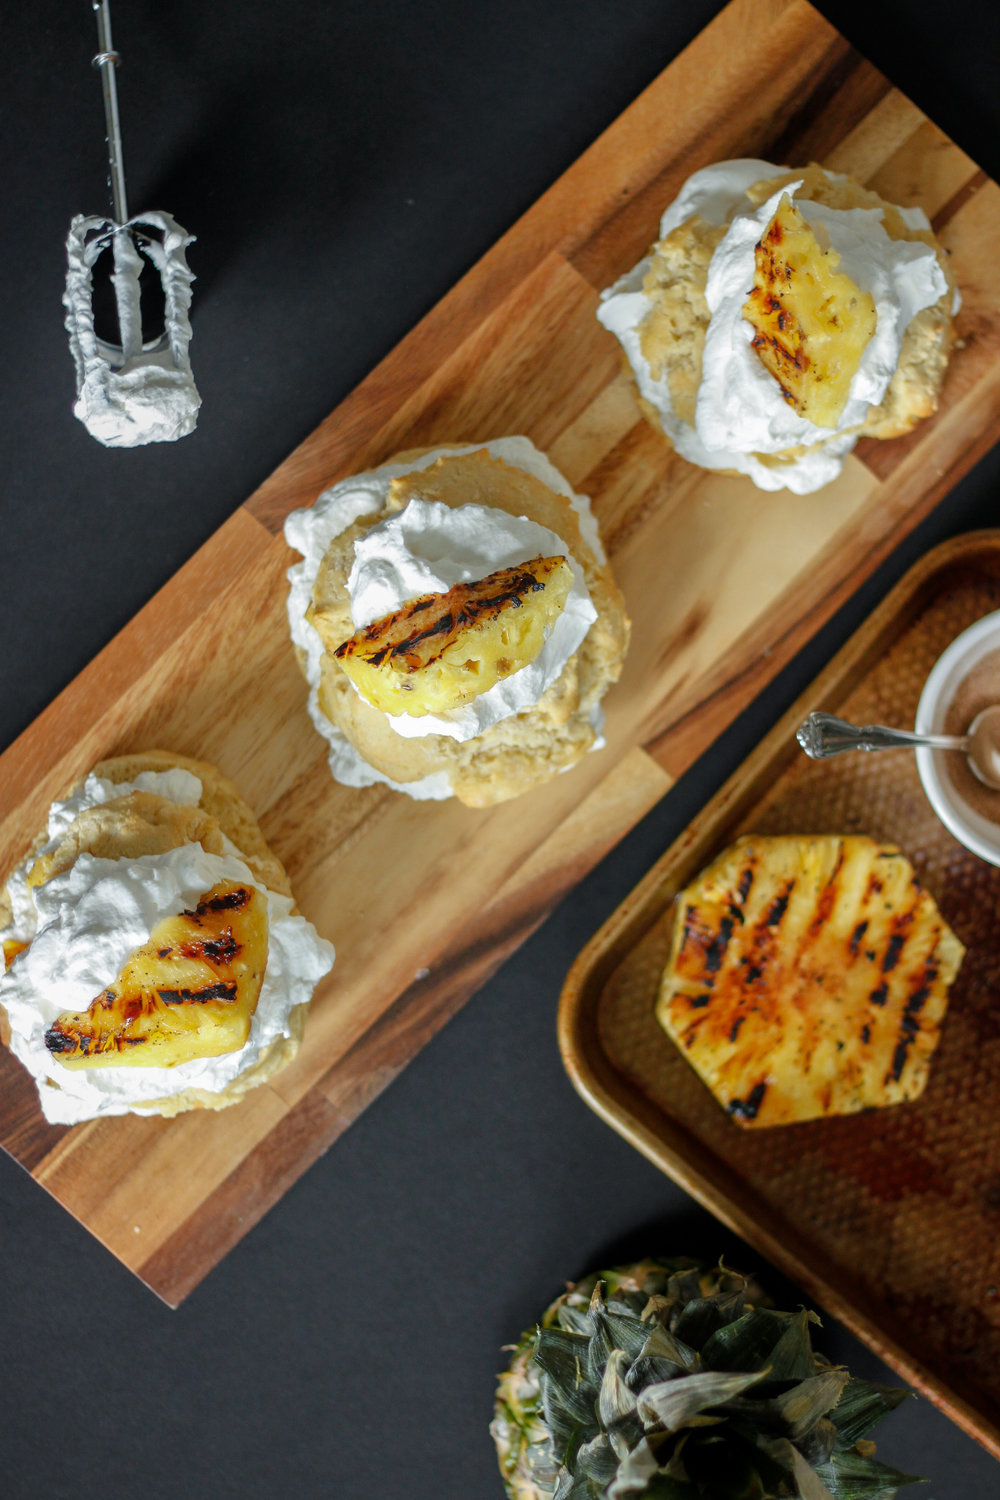 Grilled Pineapple Shortcakes